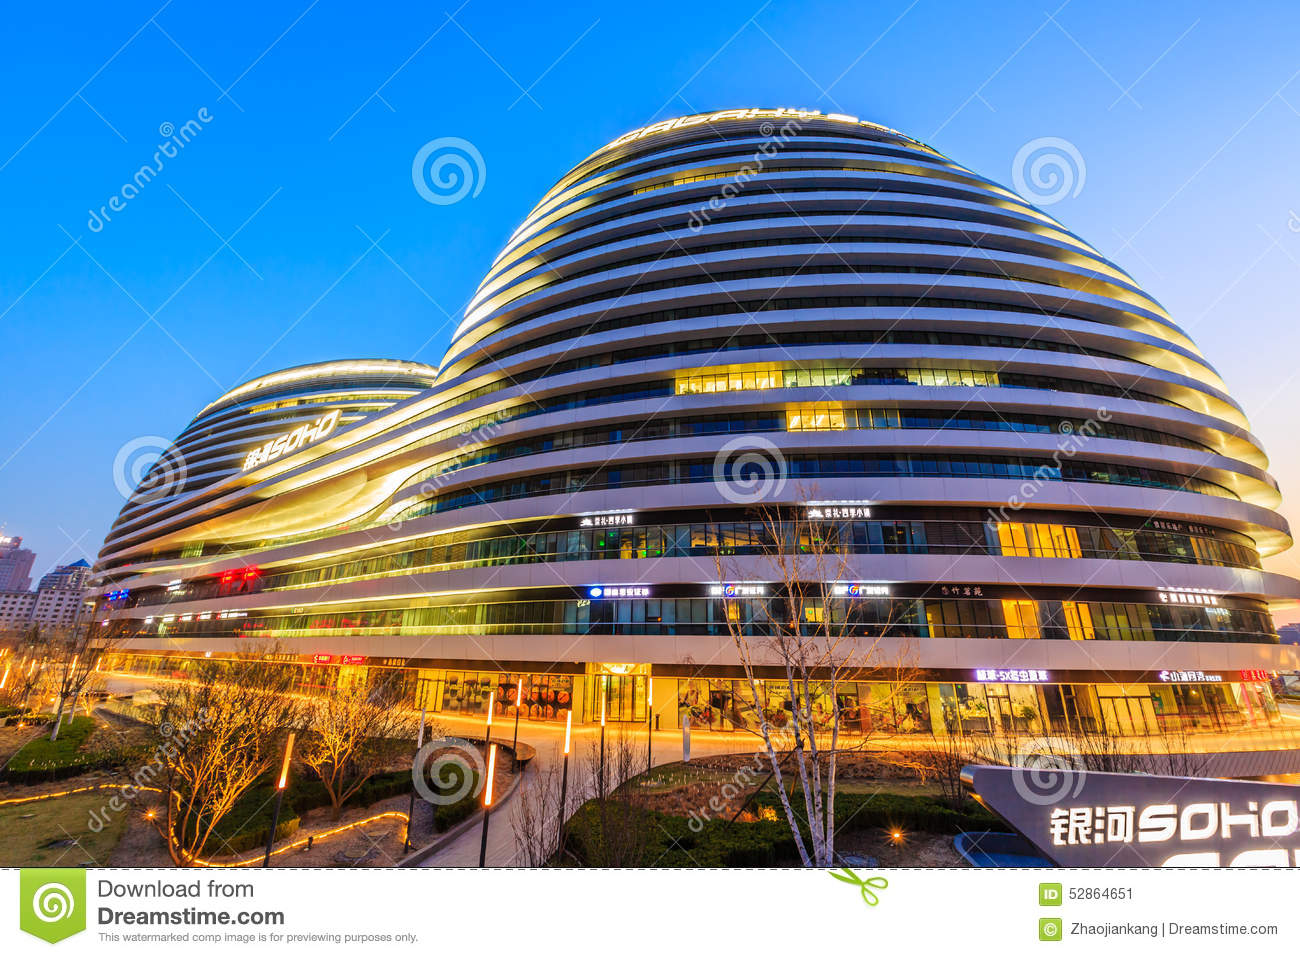 Beijing famous Modern architecture Galaxy SOHO Night view ,in China